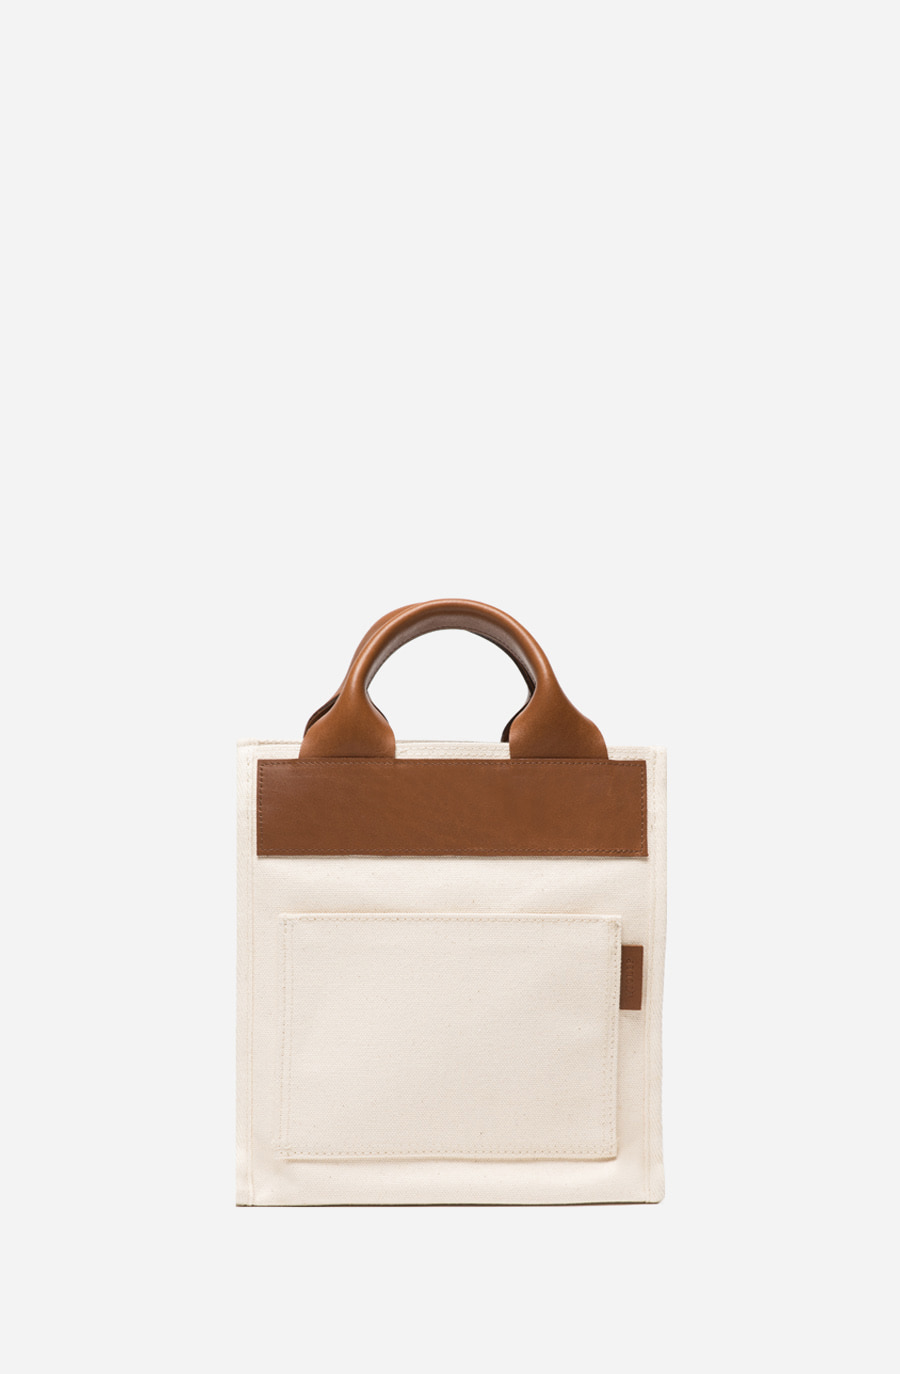 DAY BAG (small size)